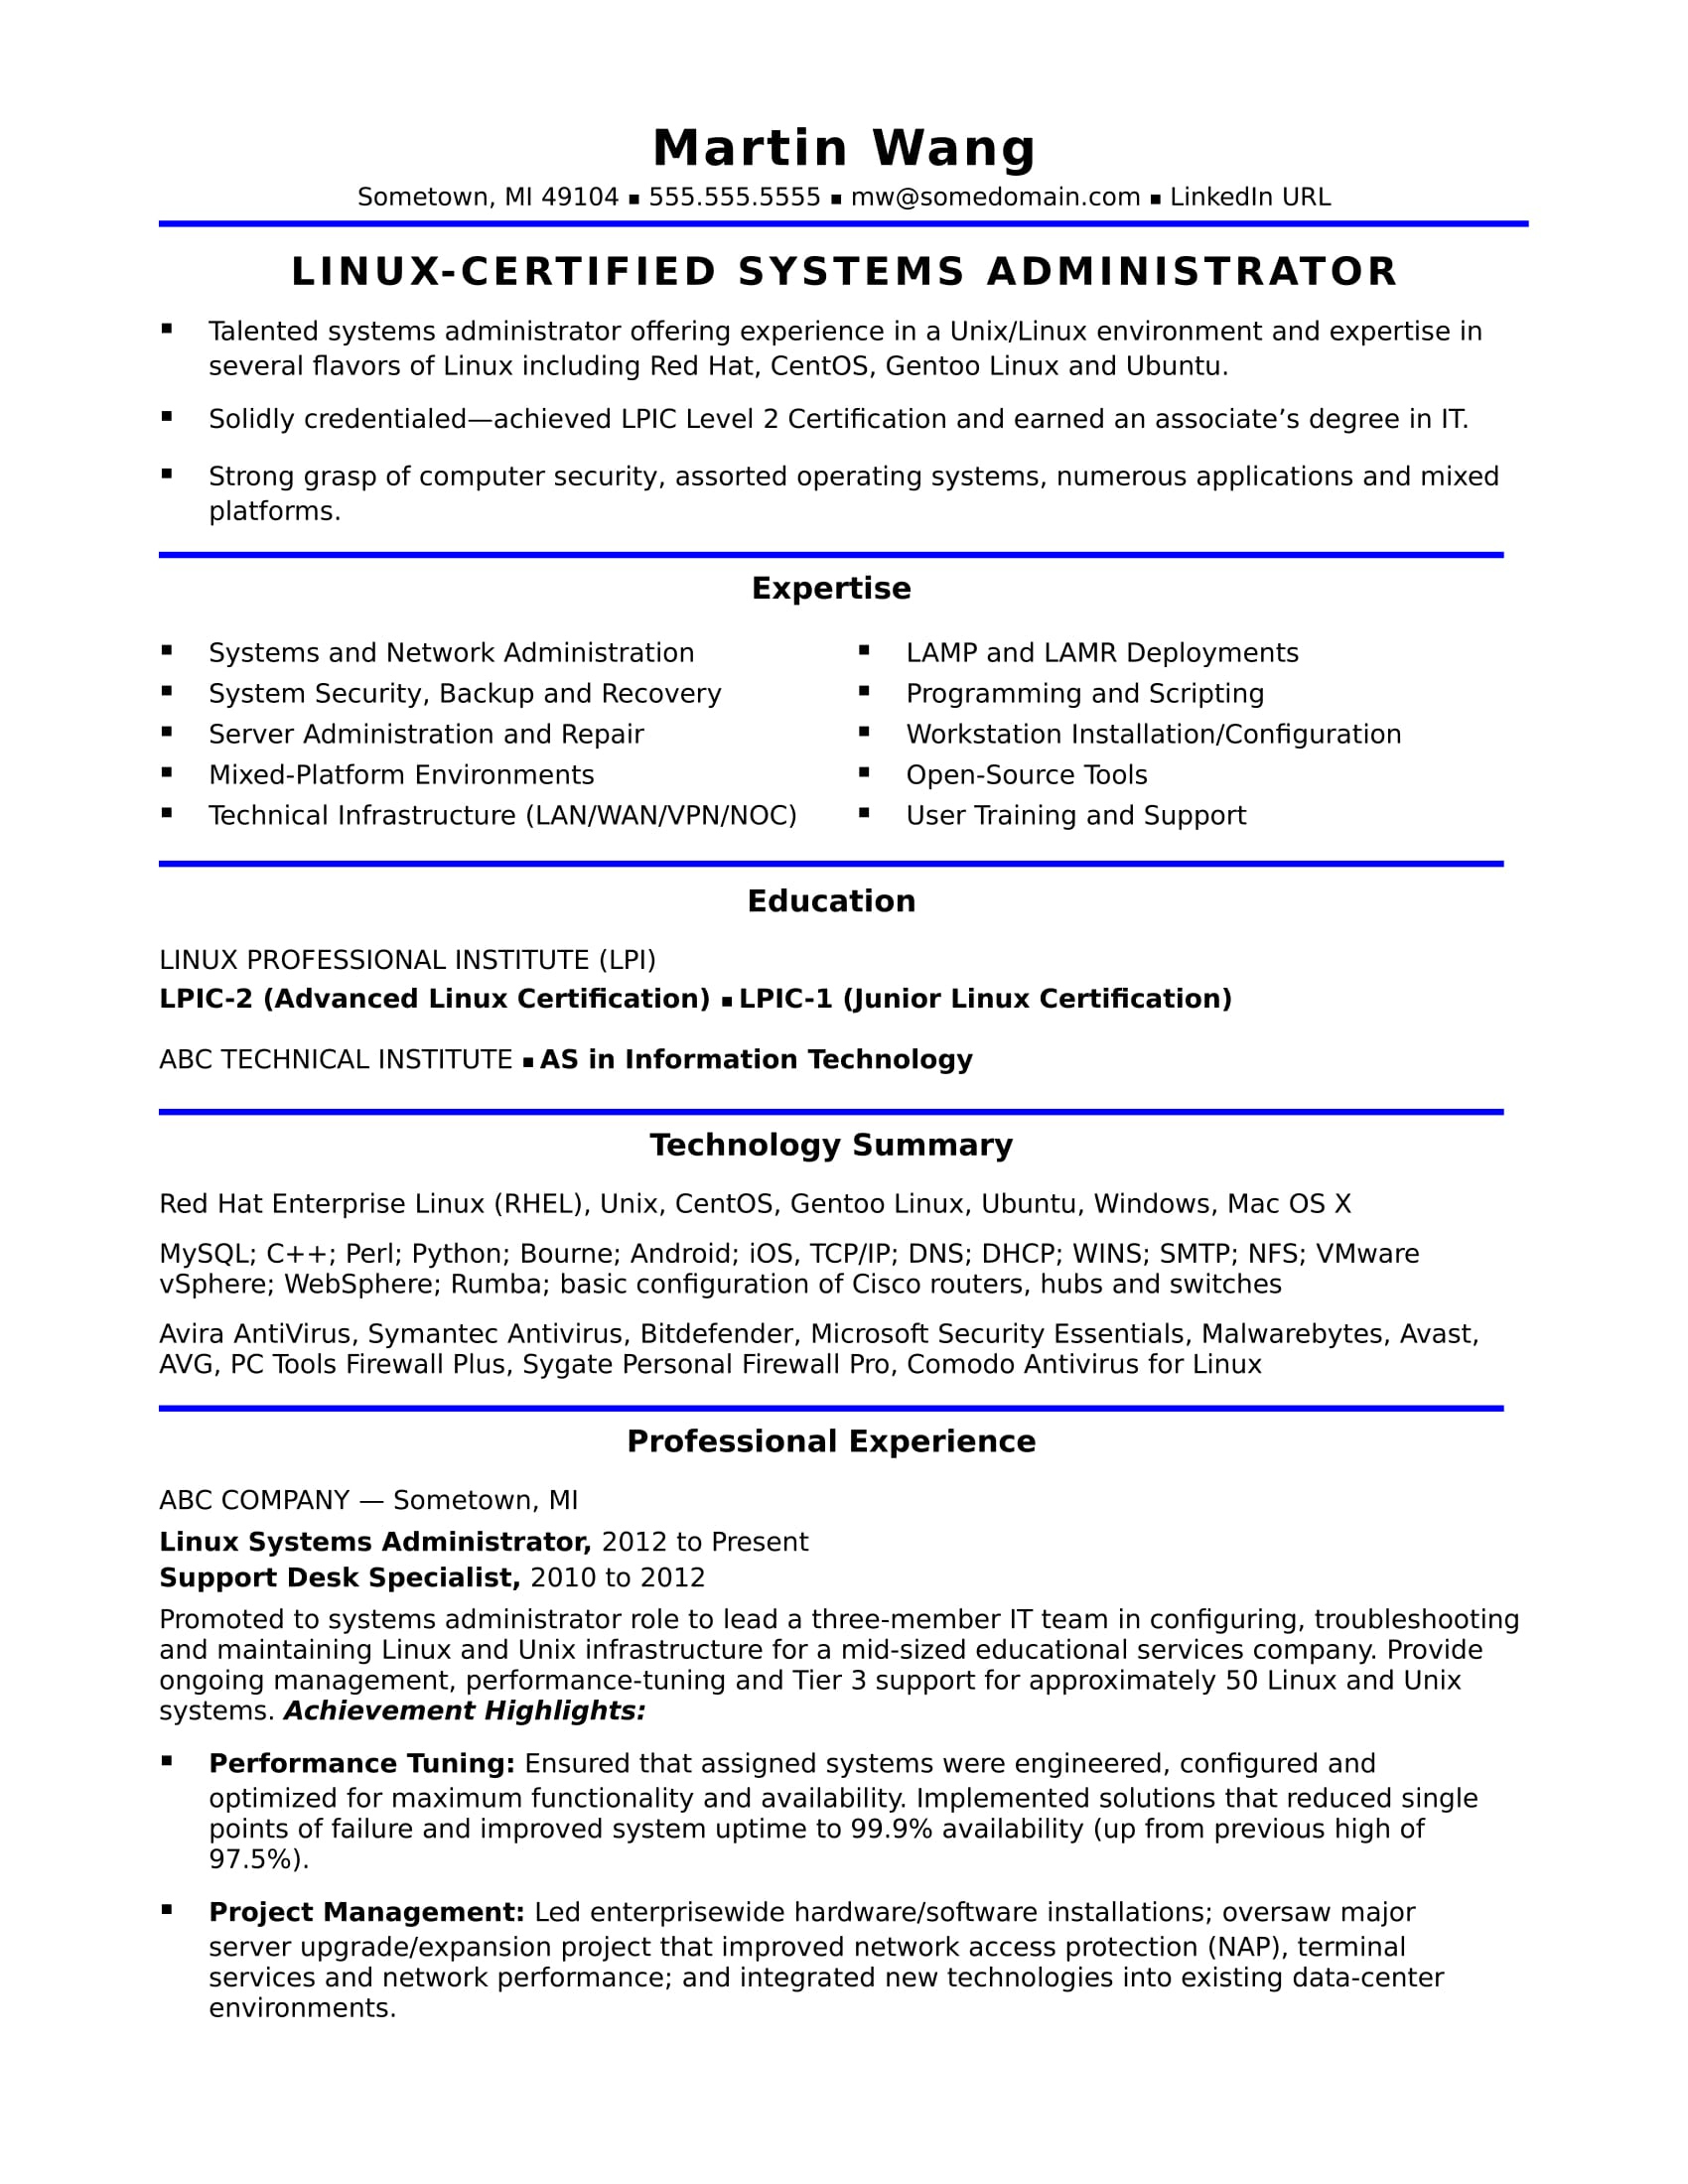 Sample Resume for a Midlevel Systems Administrator | Monster.com